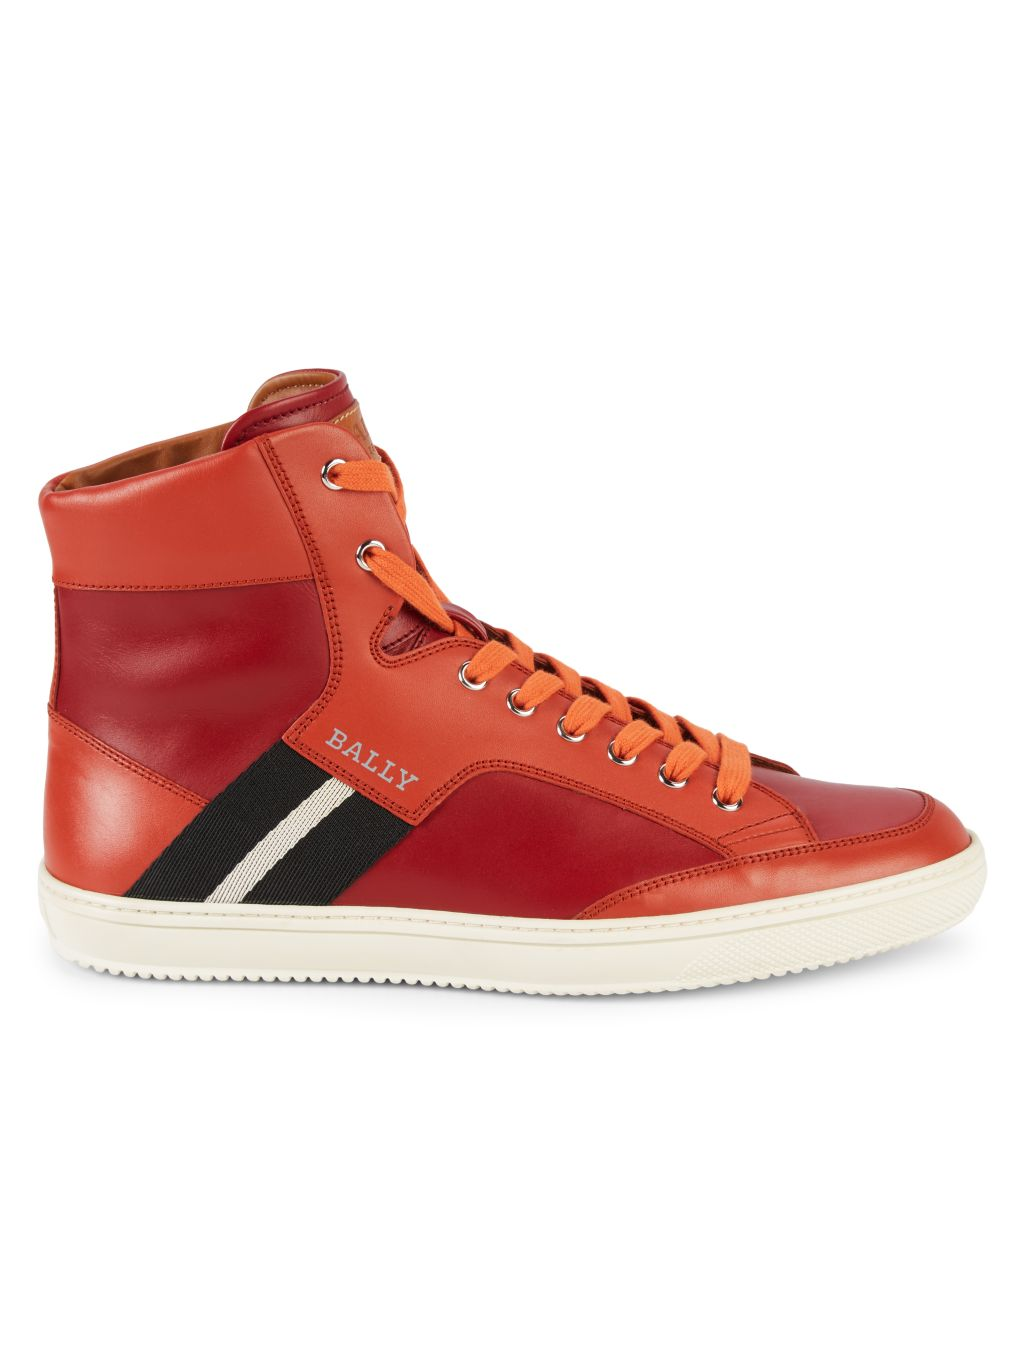 Bally Oldani Leather High-Top Sneakers